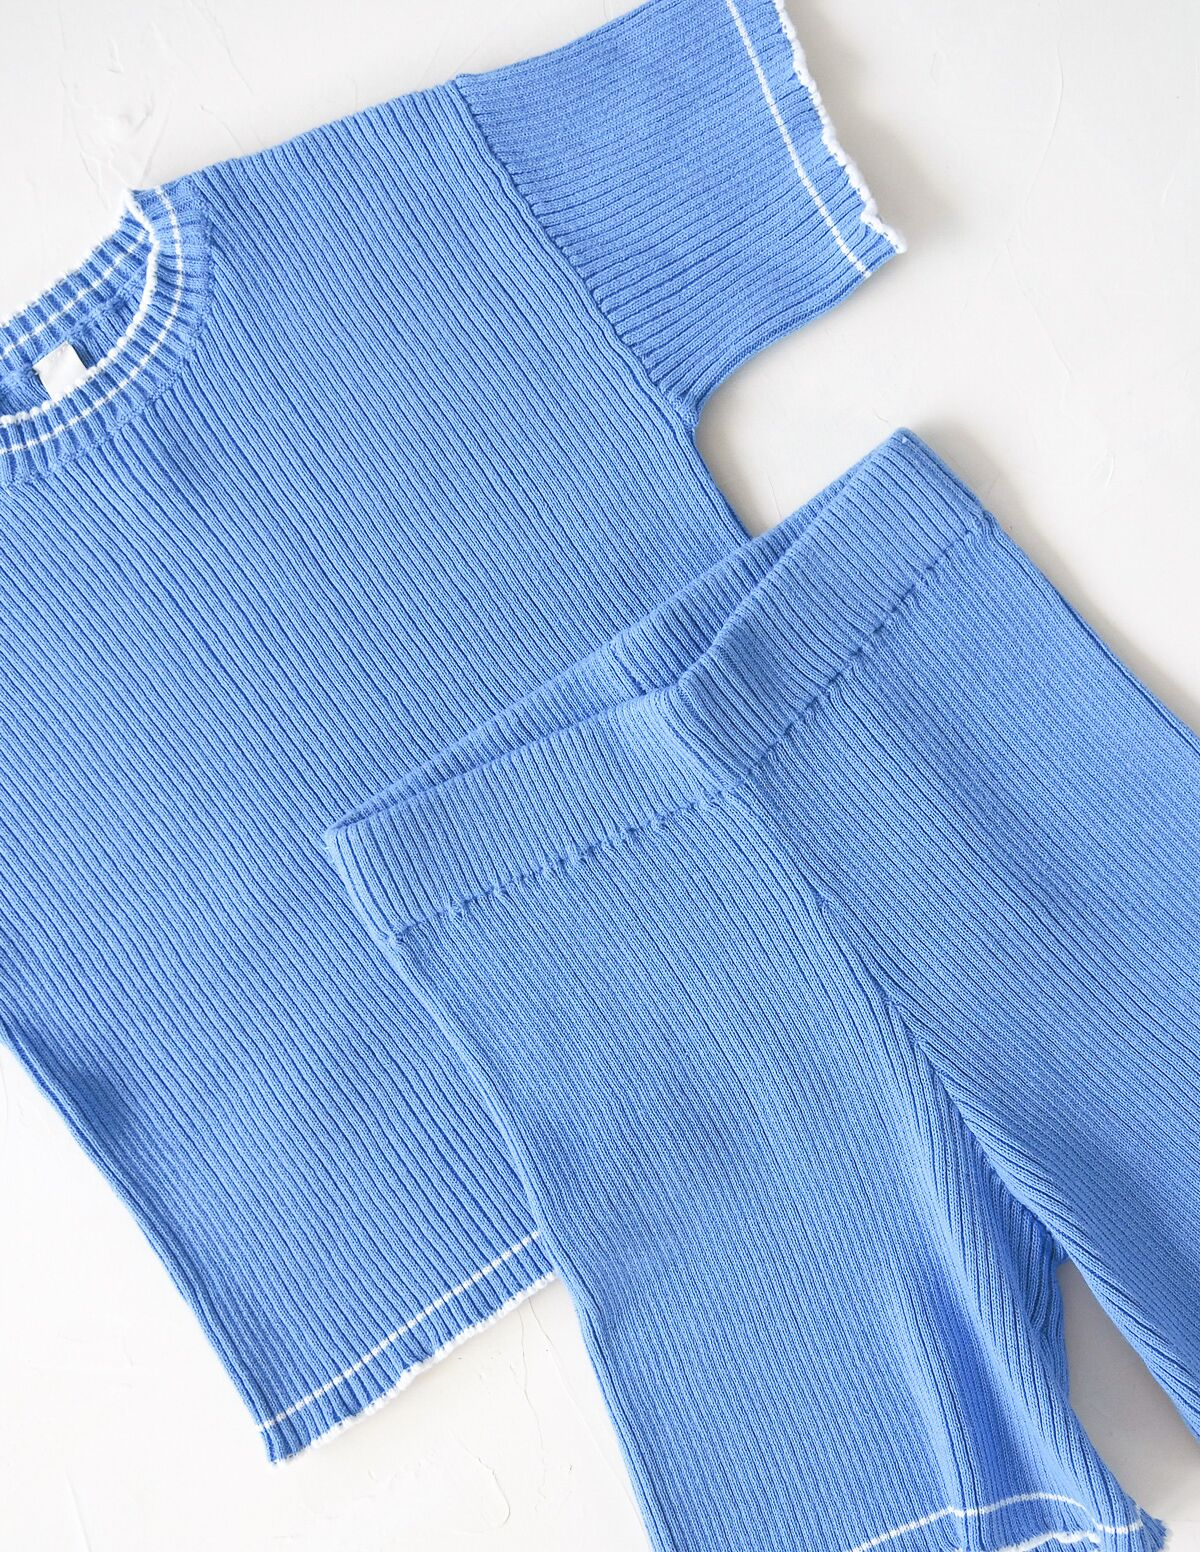 The Anyday Rib Knit Culotte - Sky Blue